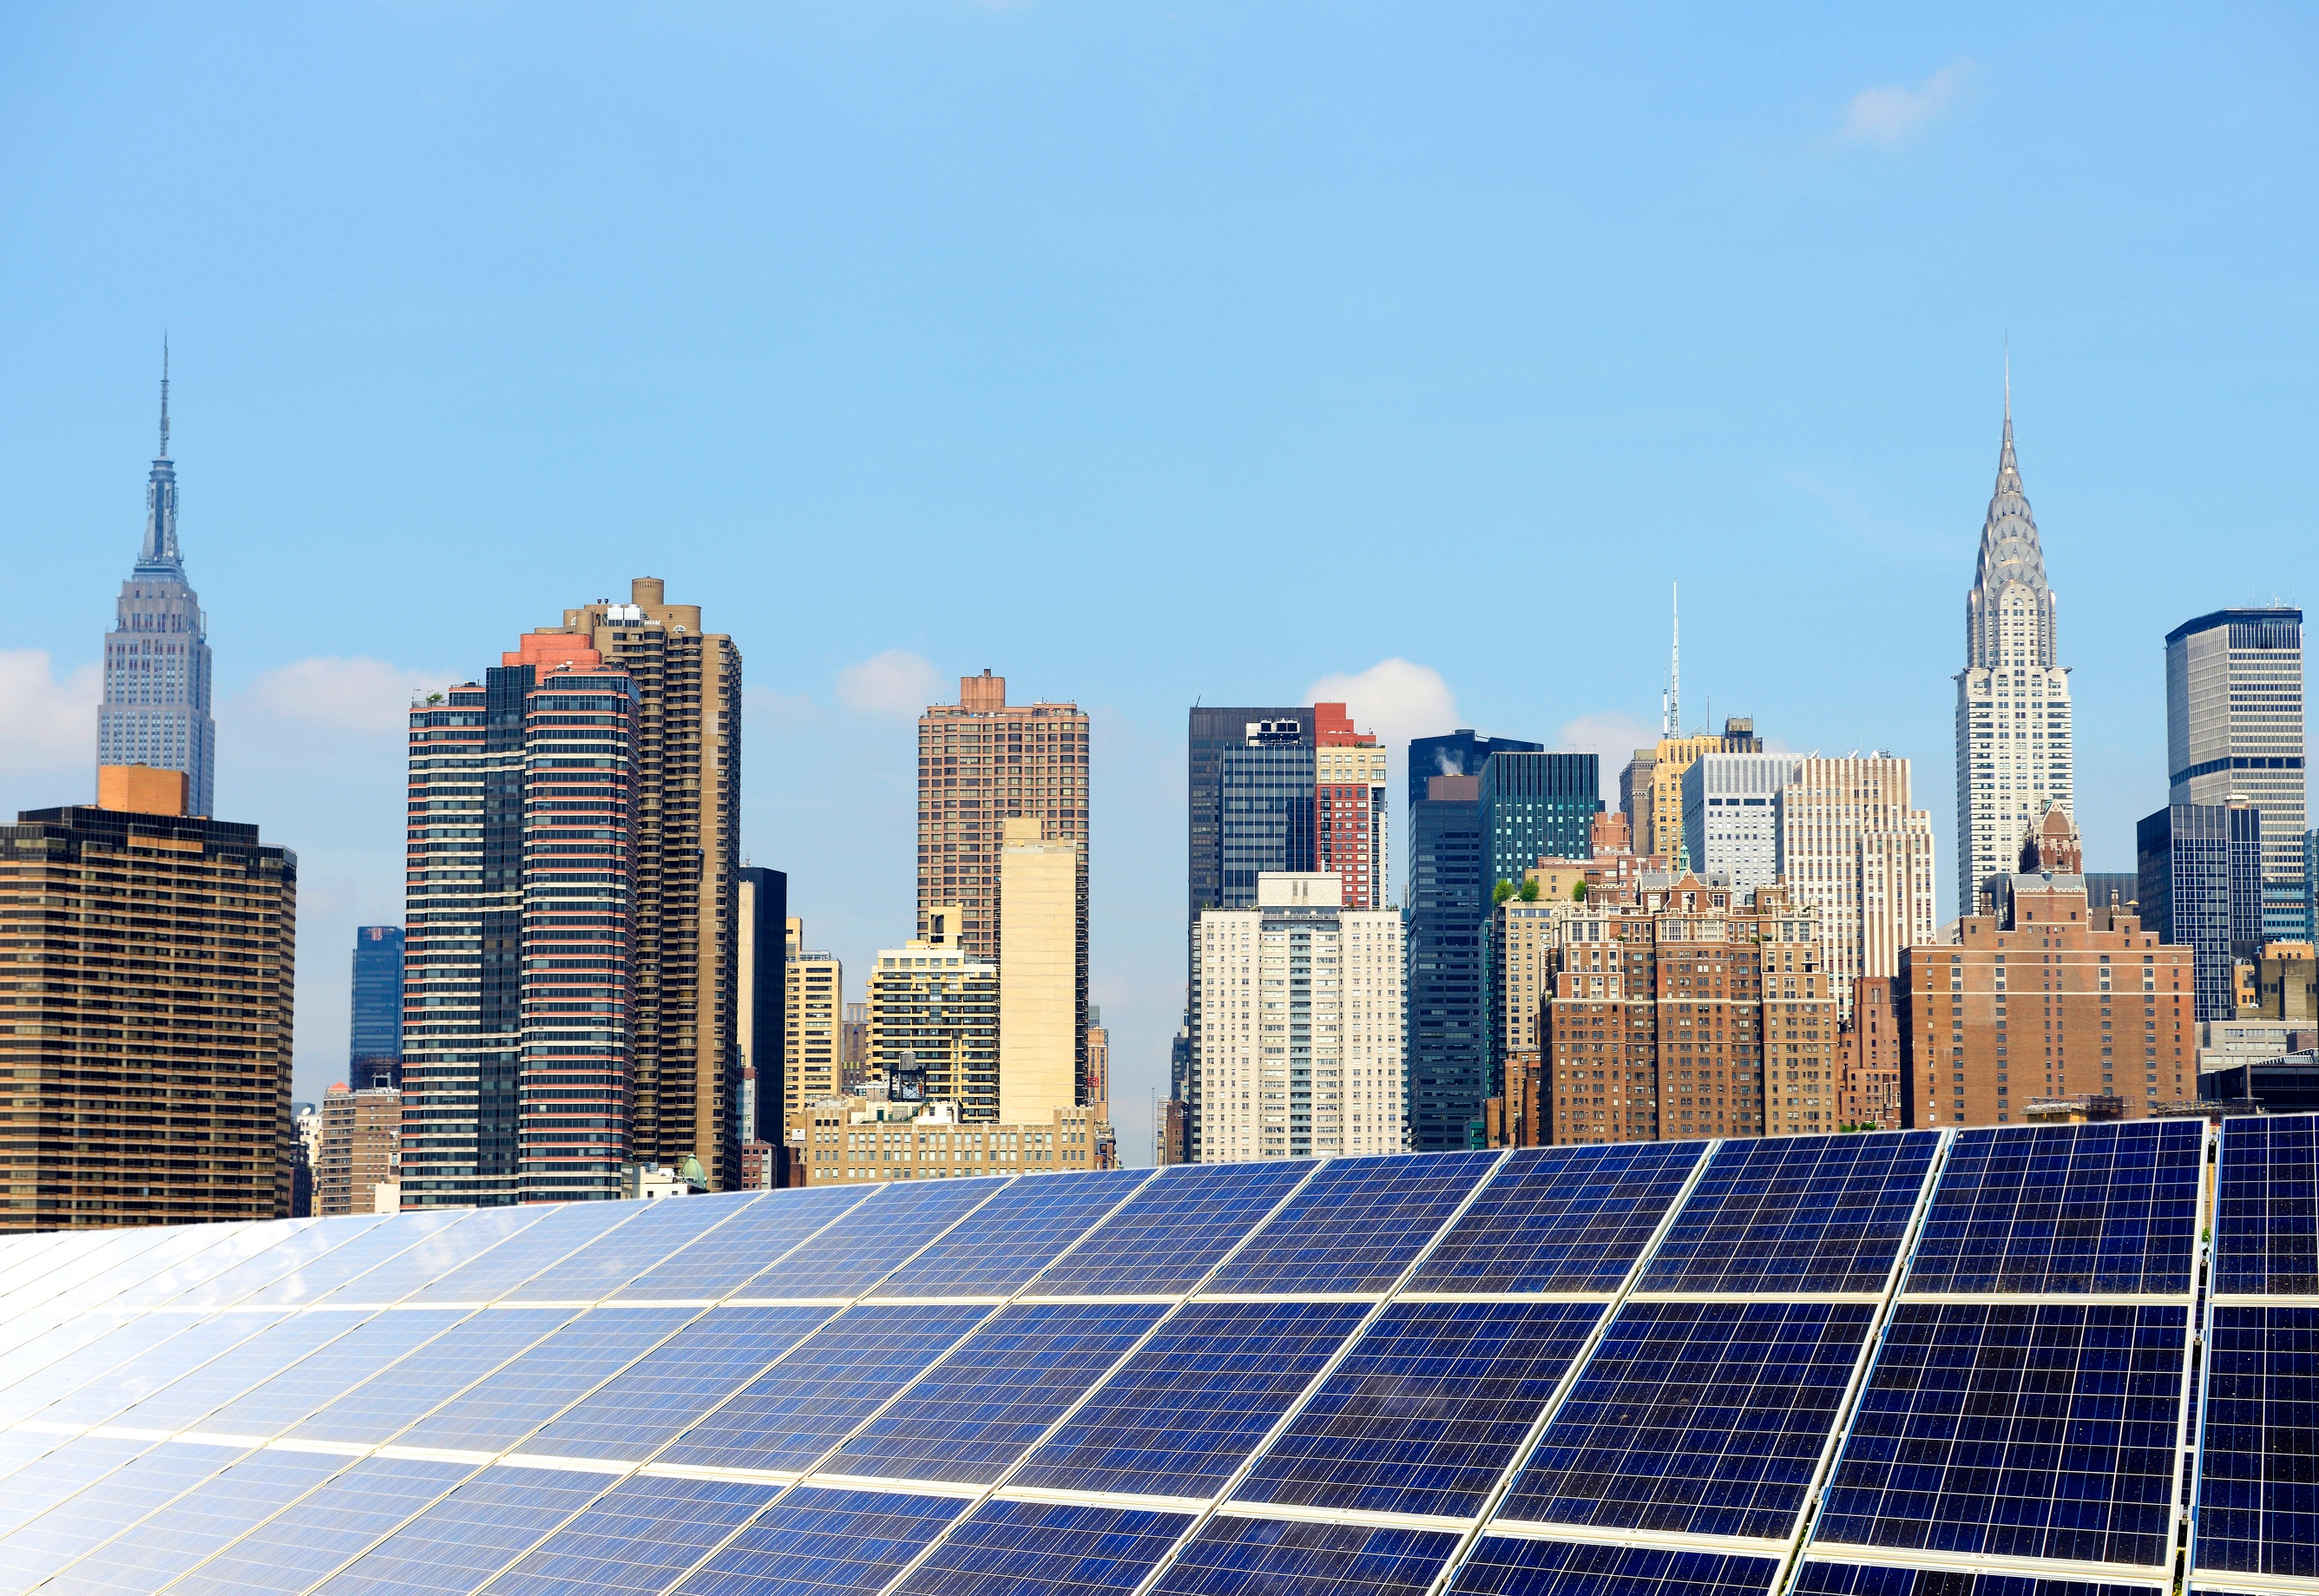 New_York_Clean_Energy_Standard_Solar-1.jpg